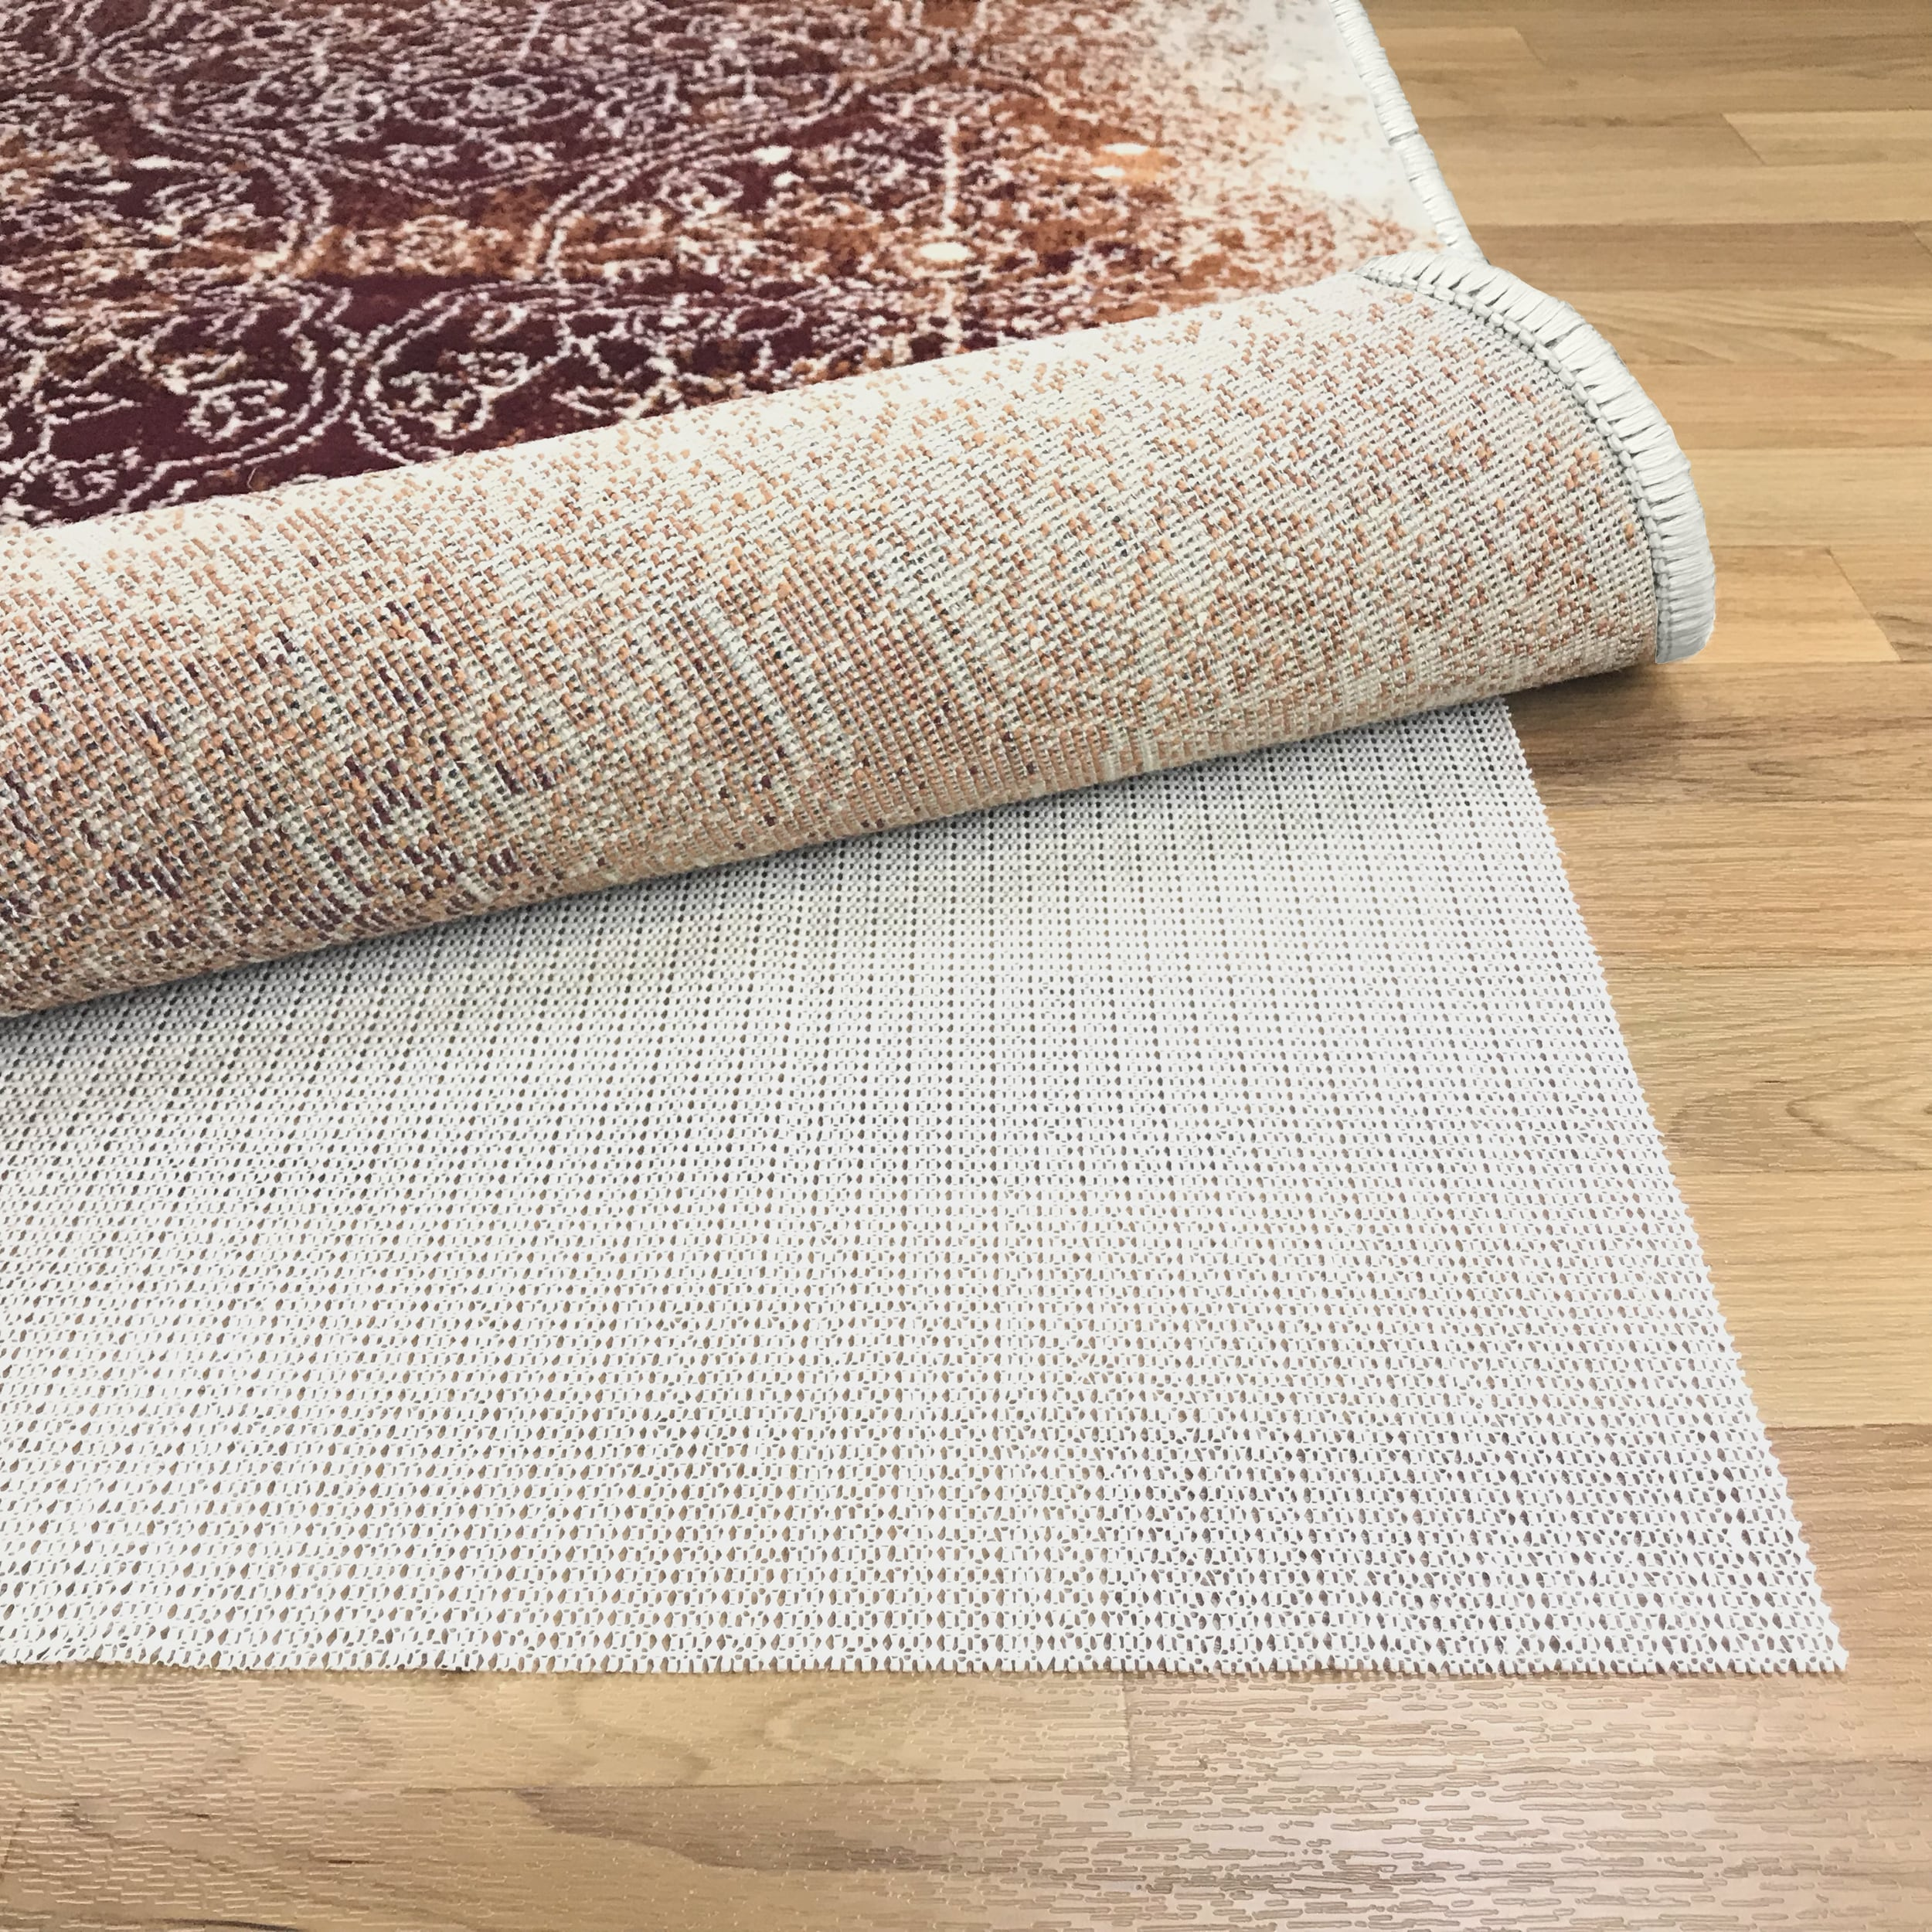 Superior Non Slip Reversible Hard Surface Area Rug Pad 6 X 9 Beige